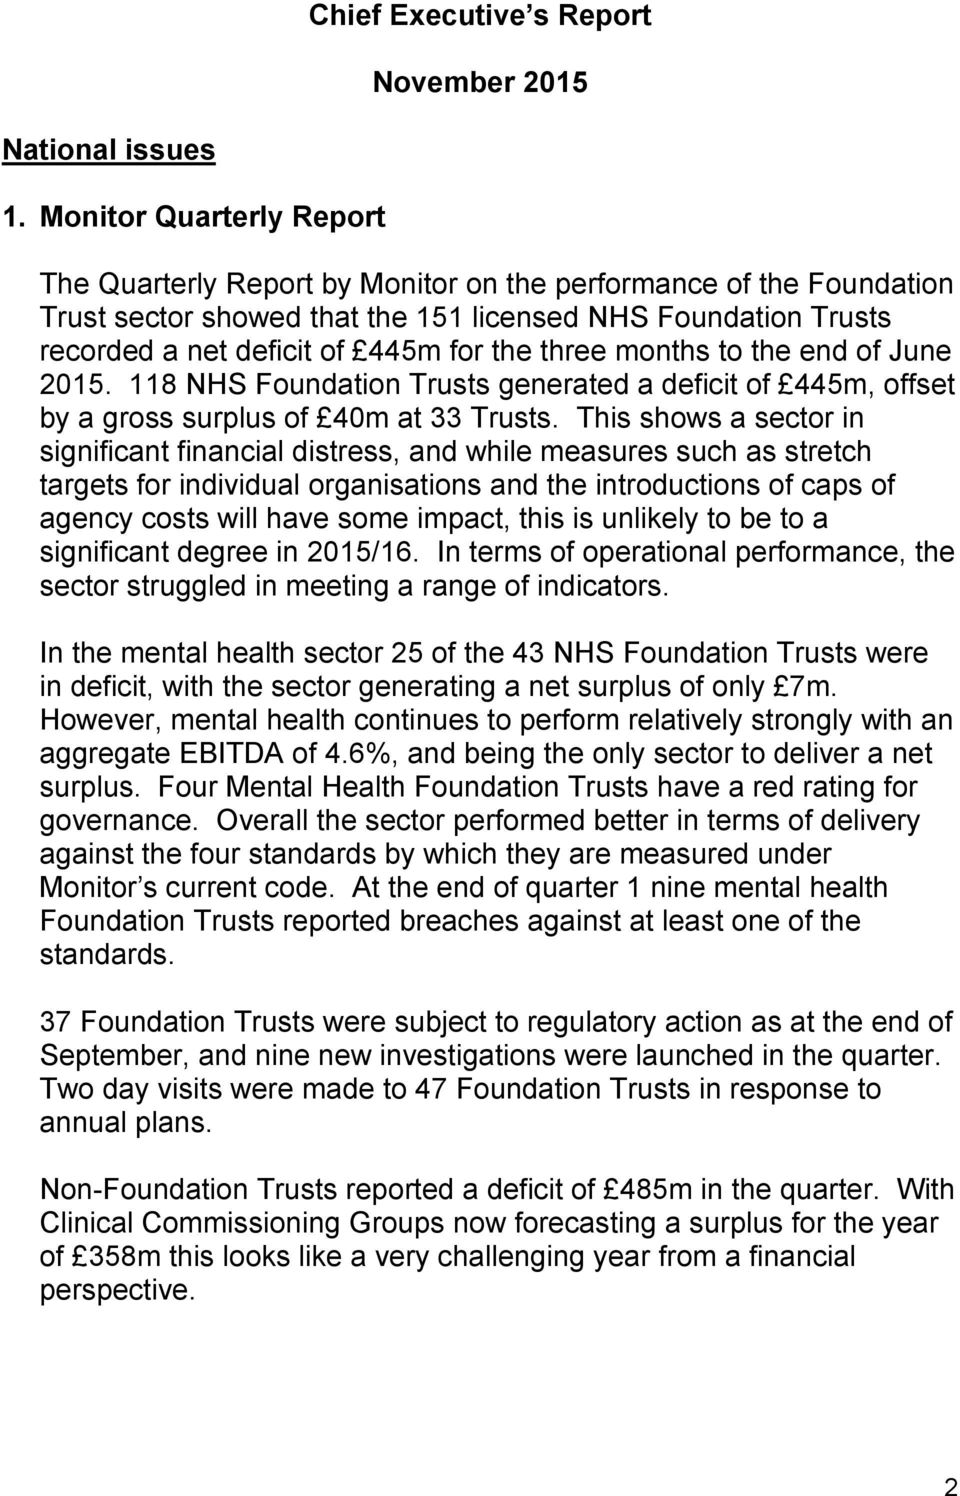 three months to the end of June 2015. 118 NHS Foundation Trusts generated a deficit of 445m, offset by a gross surplus of 40m at 33 Trusts.